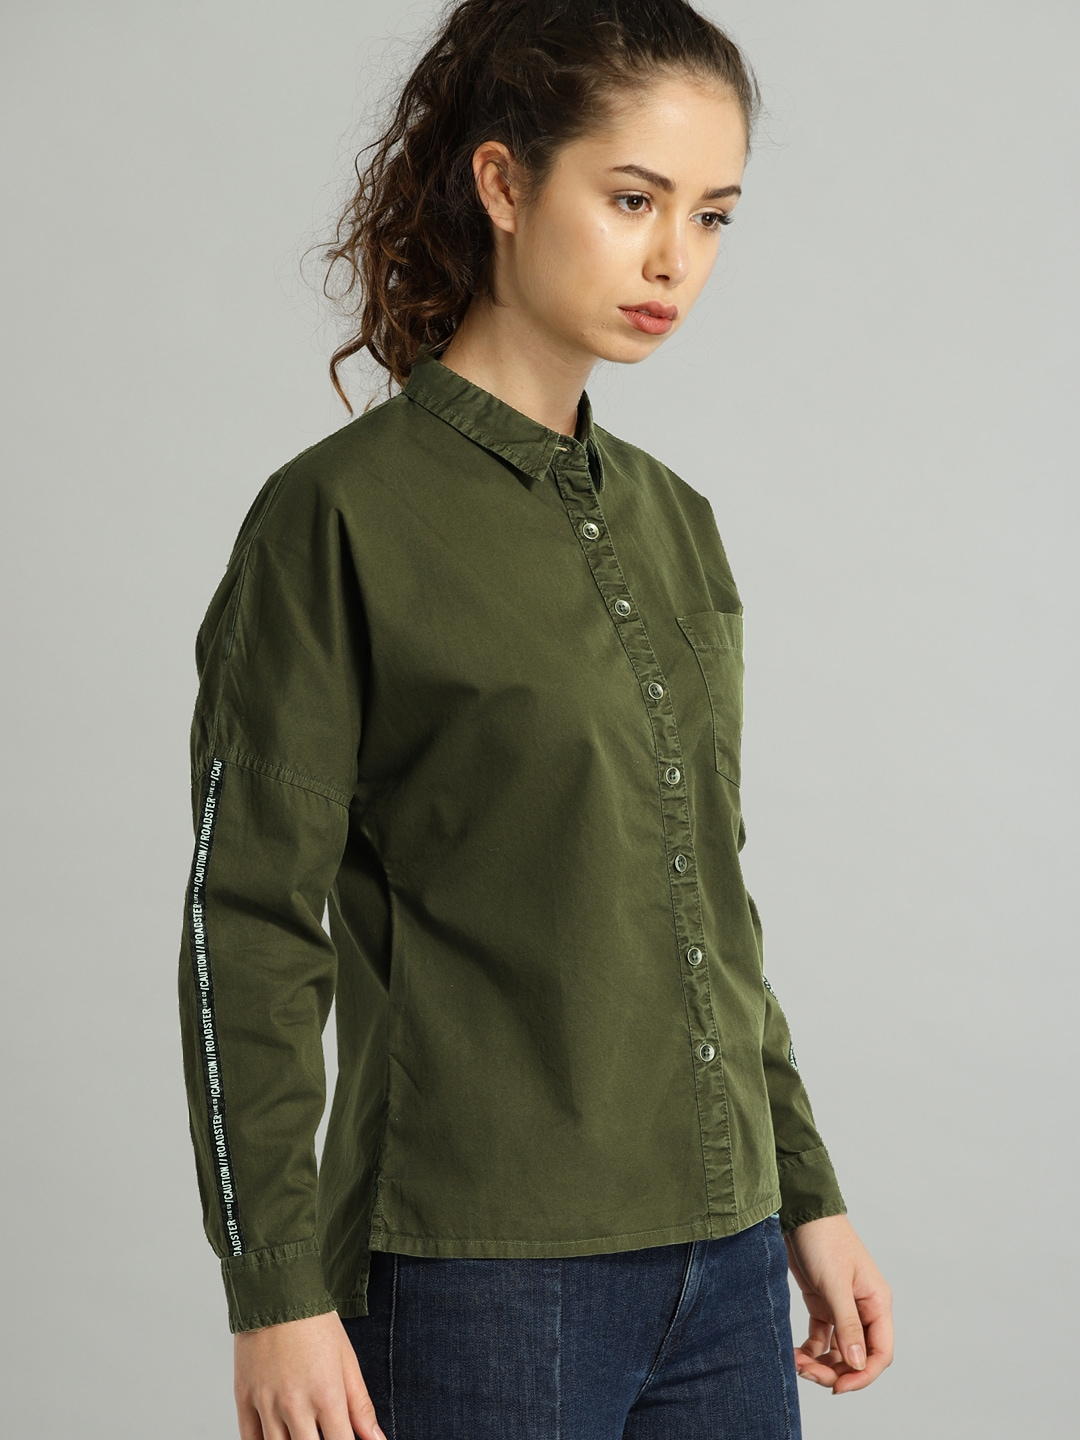 What Color Shirt Goes With Olive Green Pants Saddha